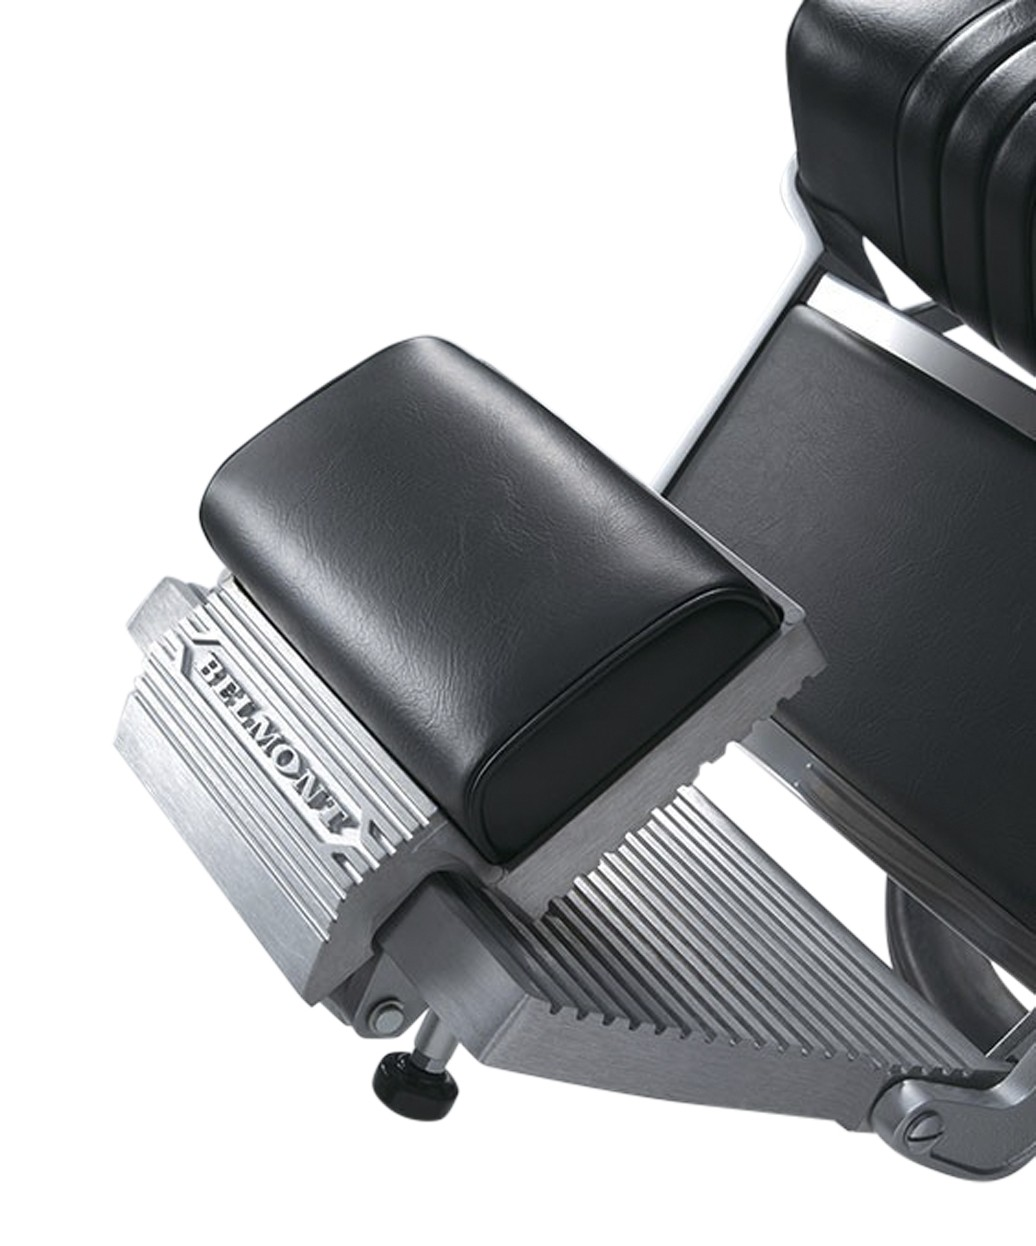 Takara Belmont BB-225BLK Elite Black Barber Chair